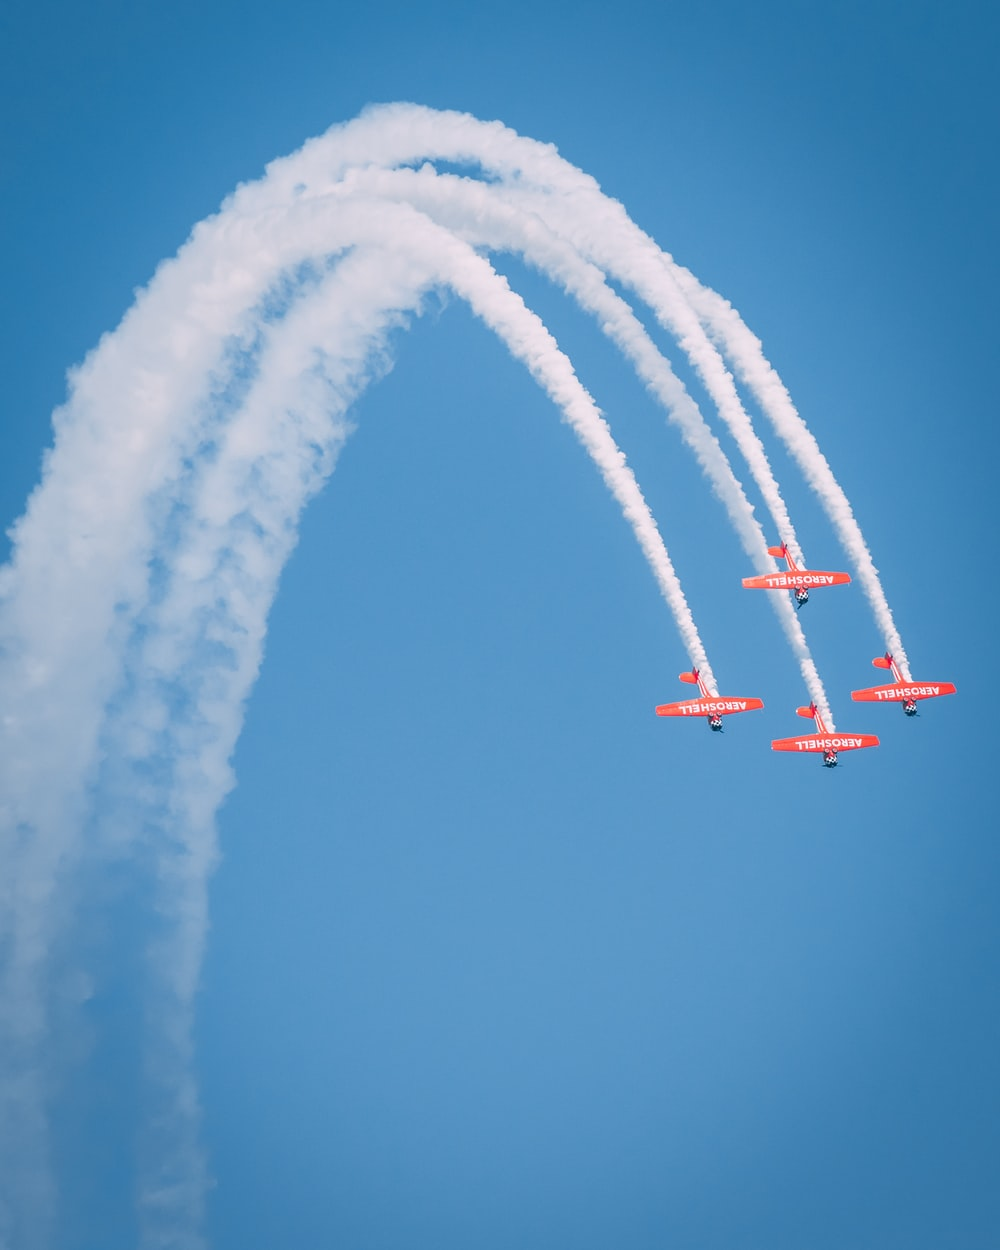 four red-and-white planes under clear blue sky